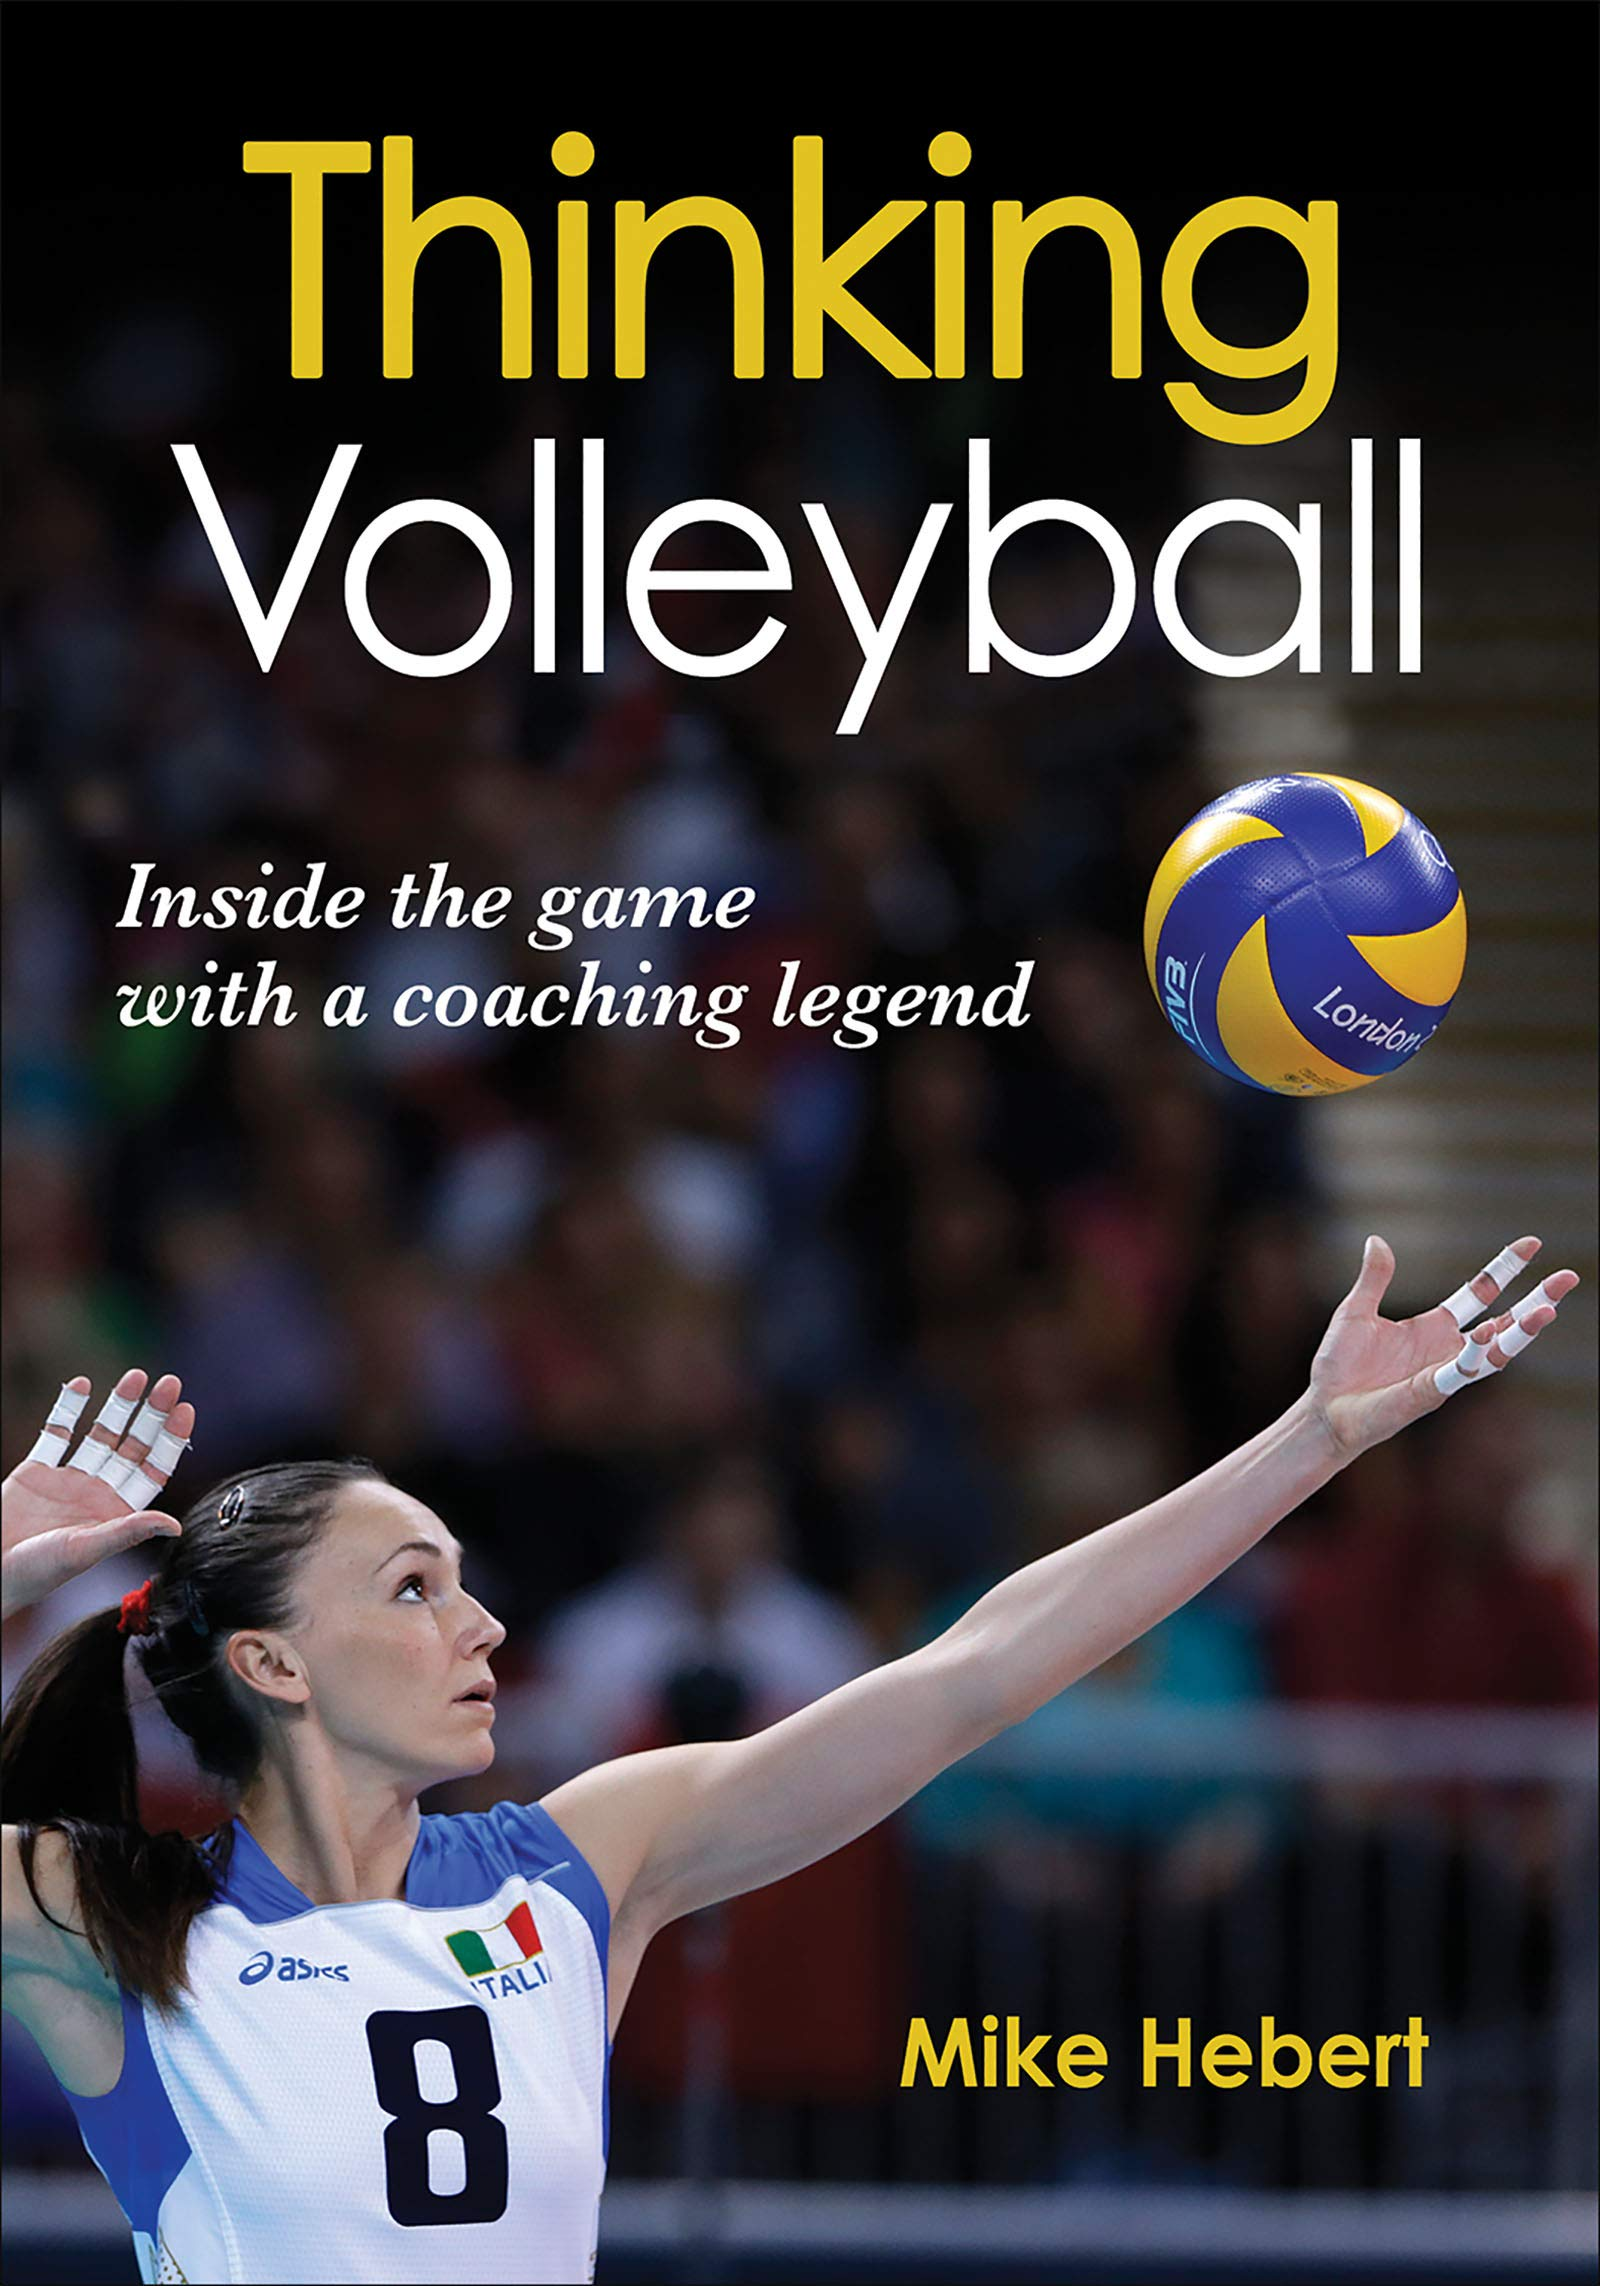 b294a5b480188 Thinking Volleyball: Mike Hebert: 9781450442626: Amazon.com: Books